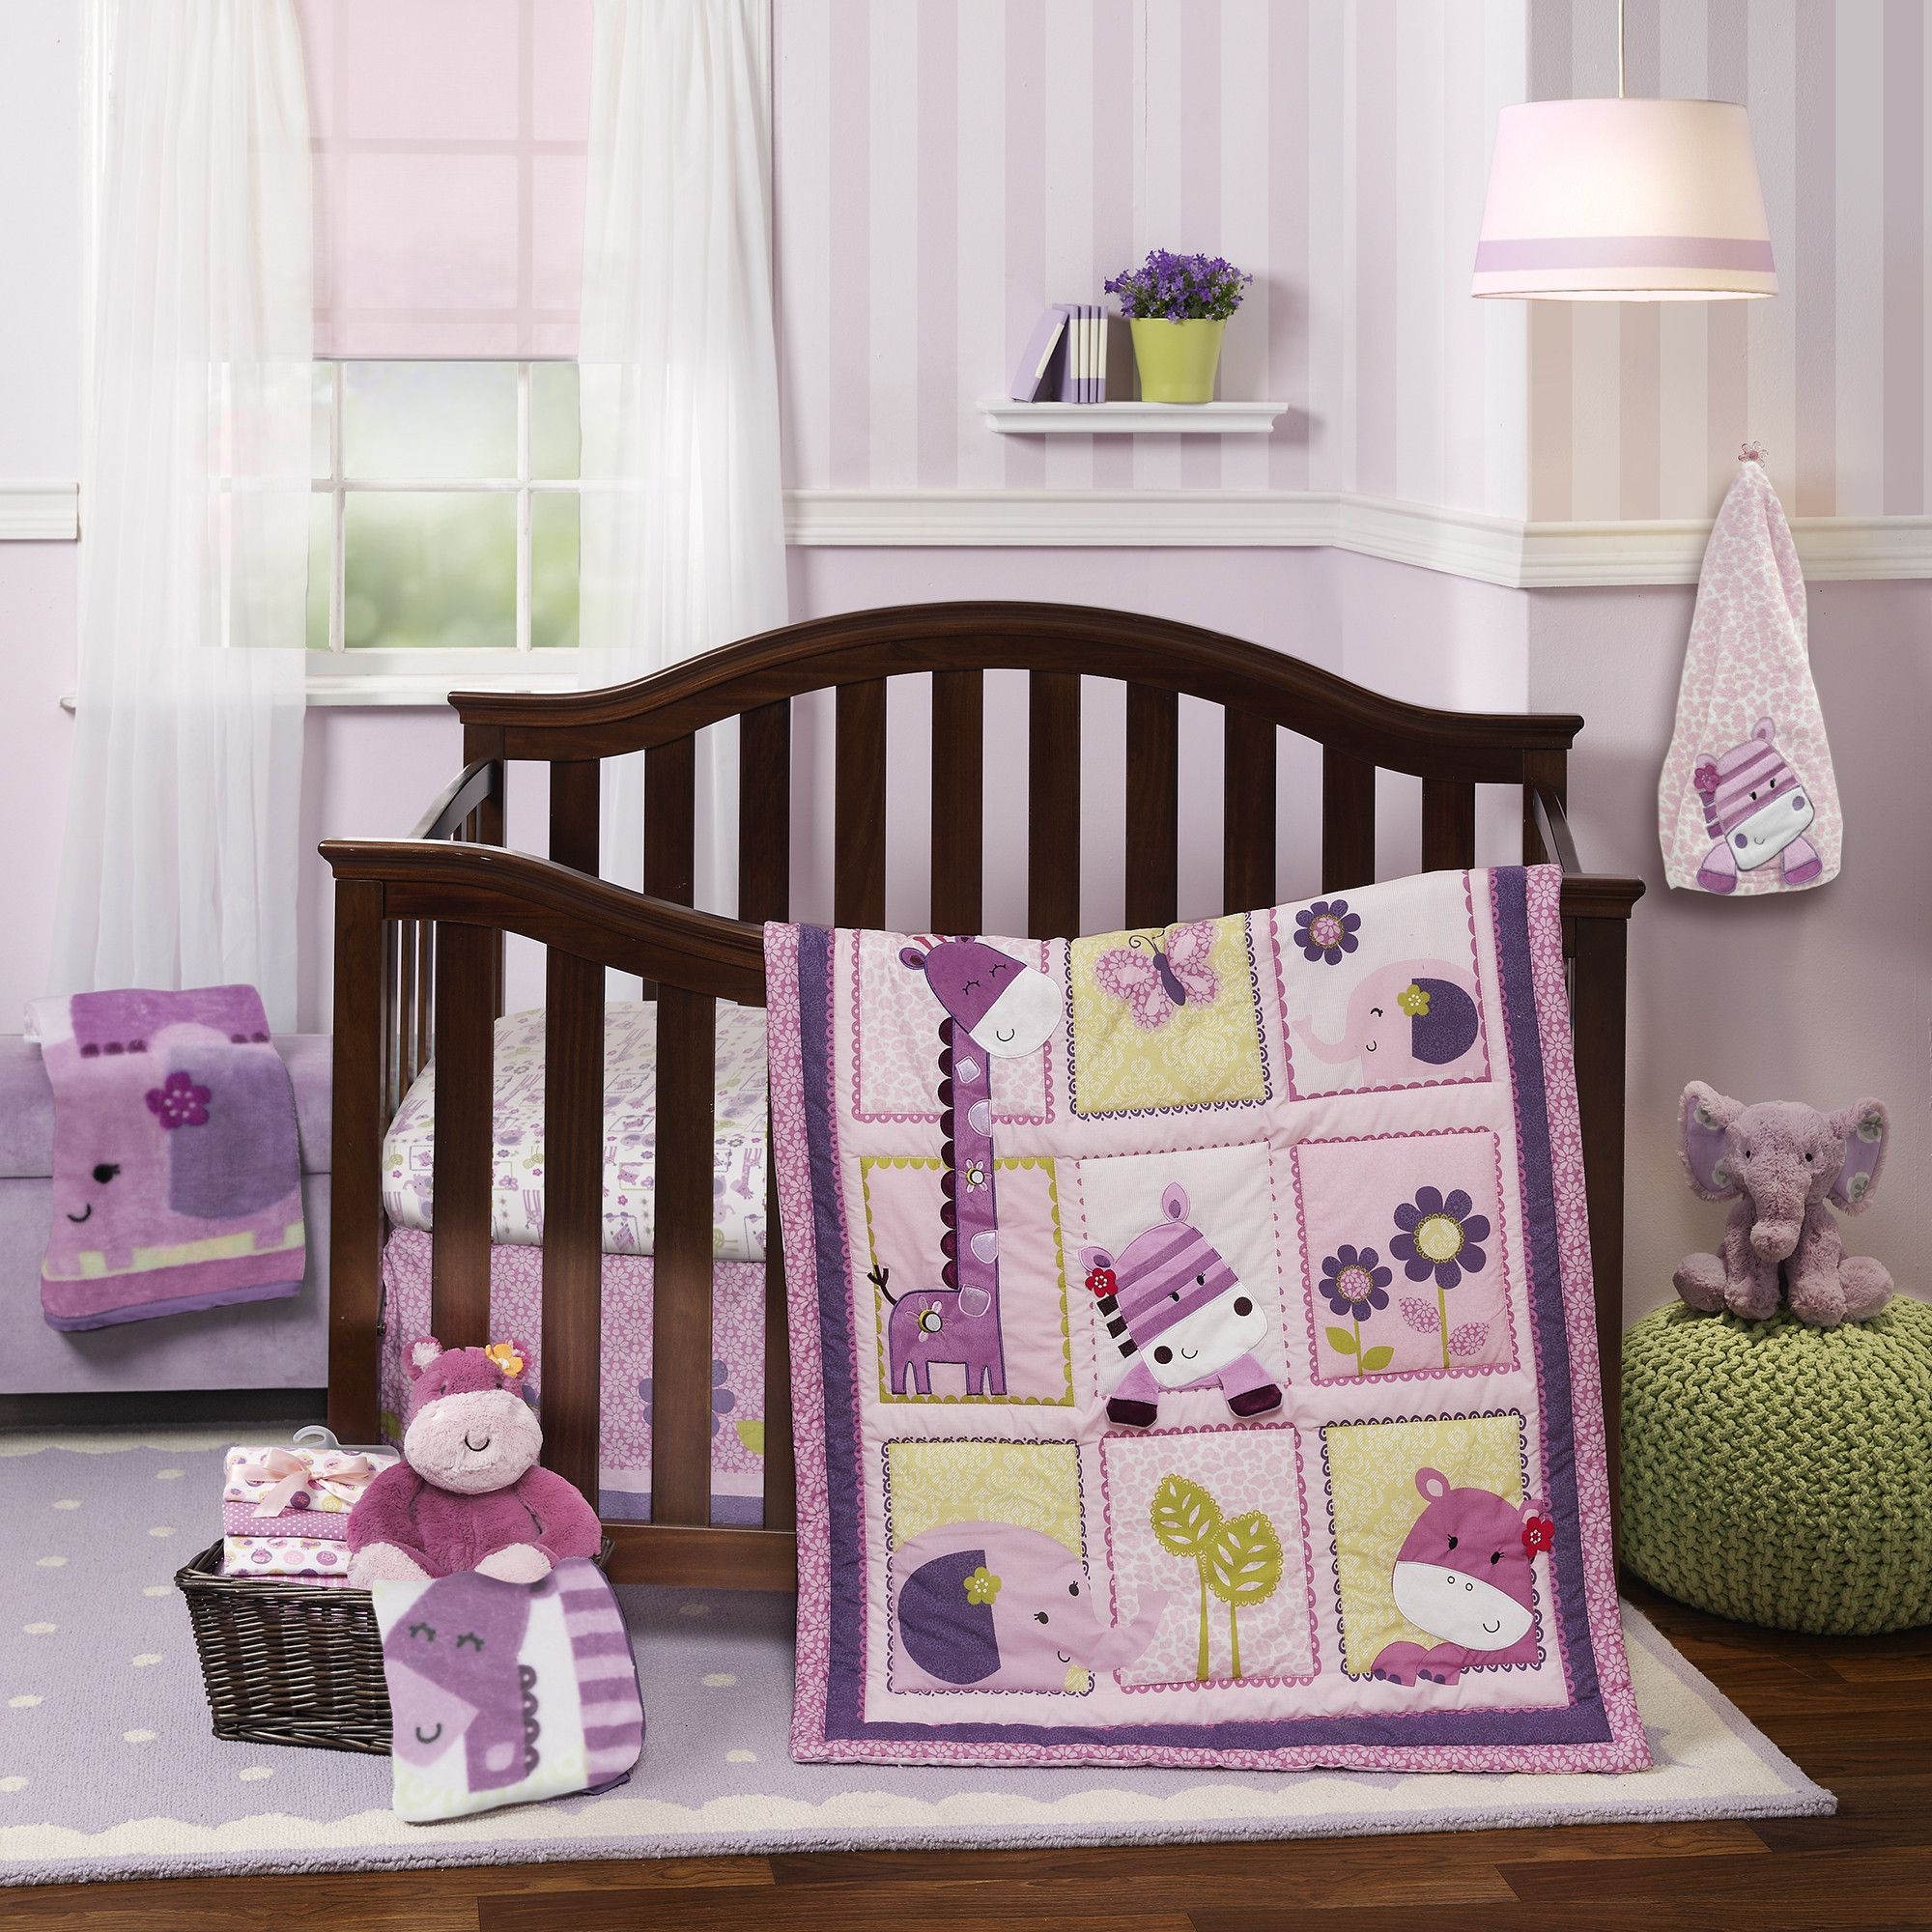 Crib for sale sears - Hopscotch Jungle 3 Piece Crib Bedding Set By Lambs Ivy Available At Sears Other Accessories